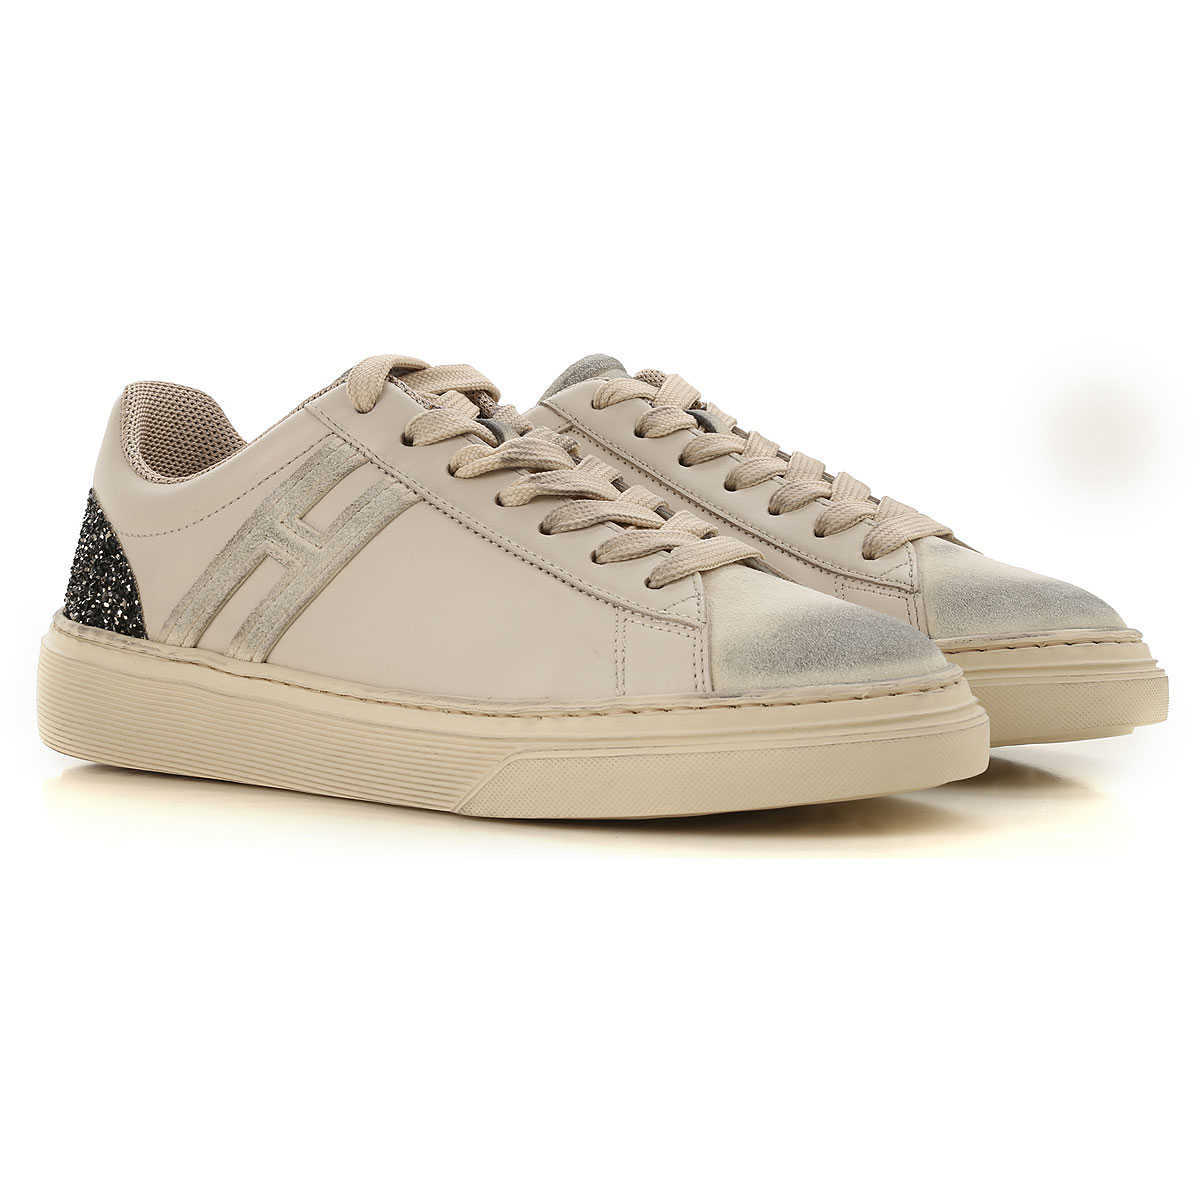 Hogan Sneakers for Women On Sale in Outlet Dirty White - GOOFASH